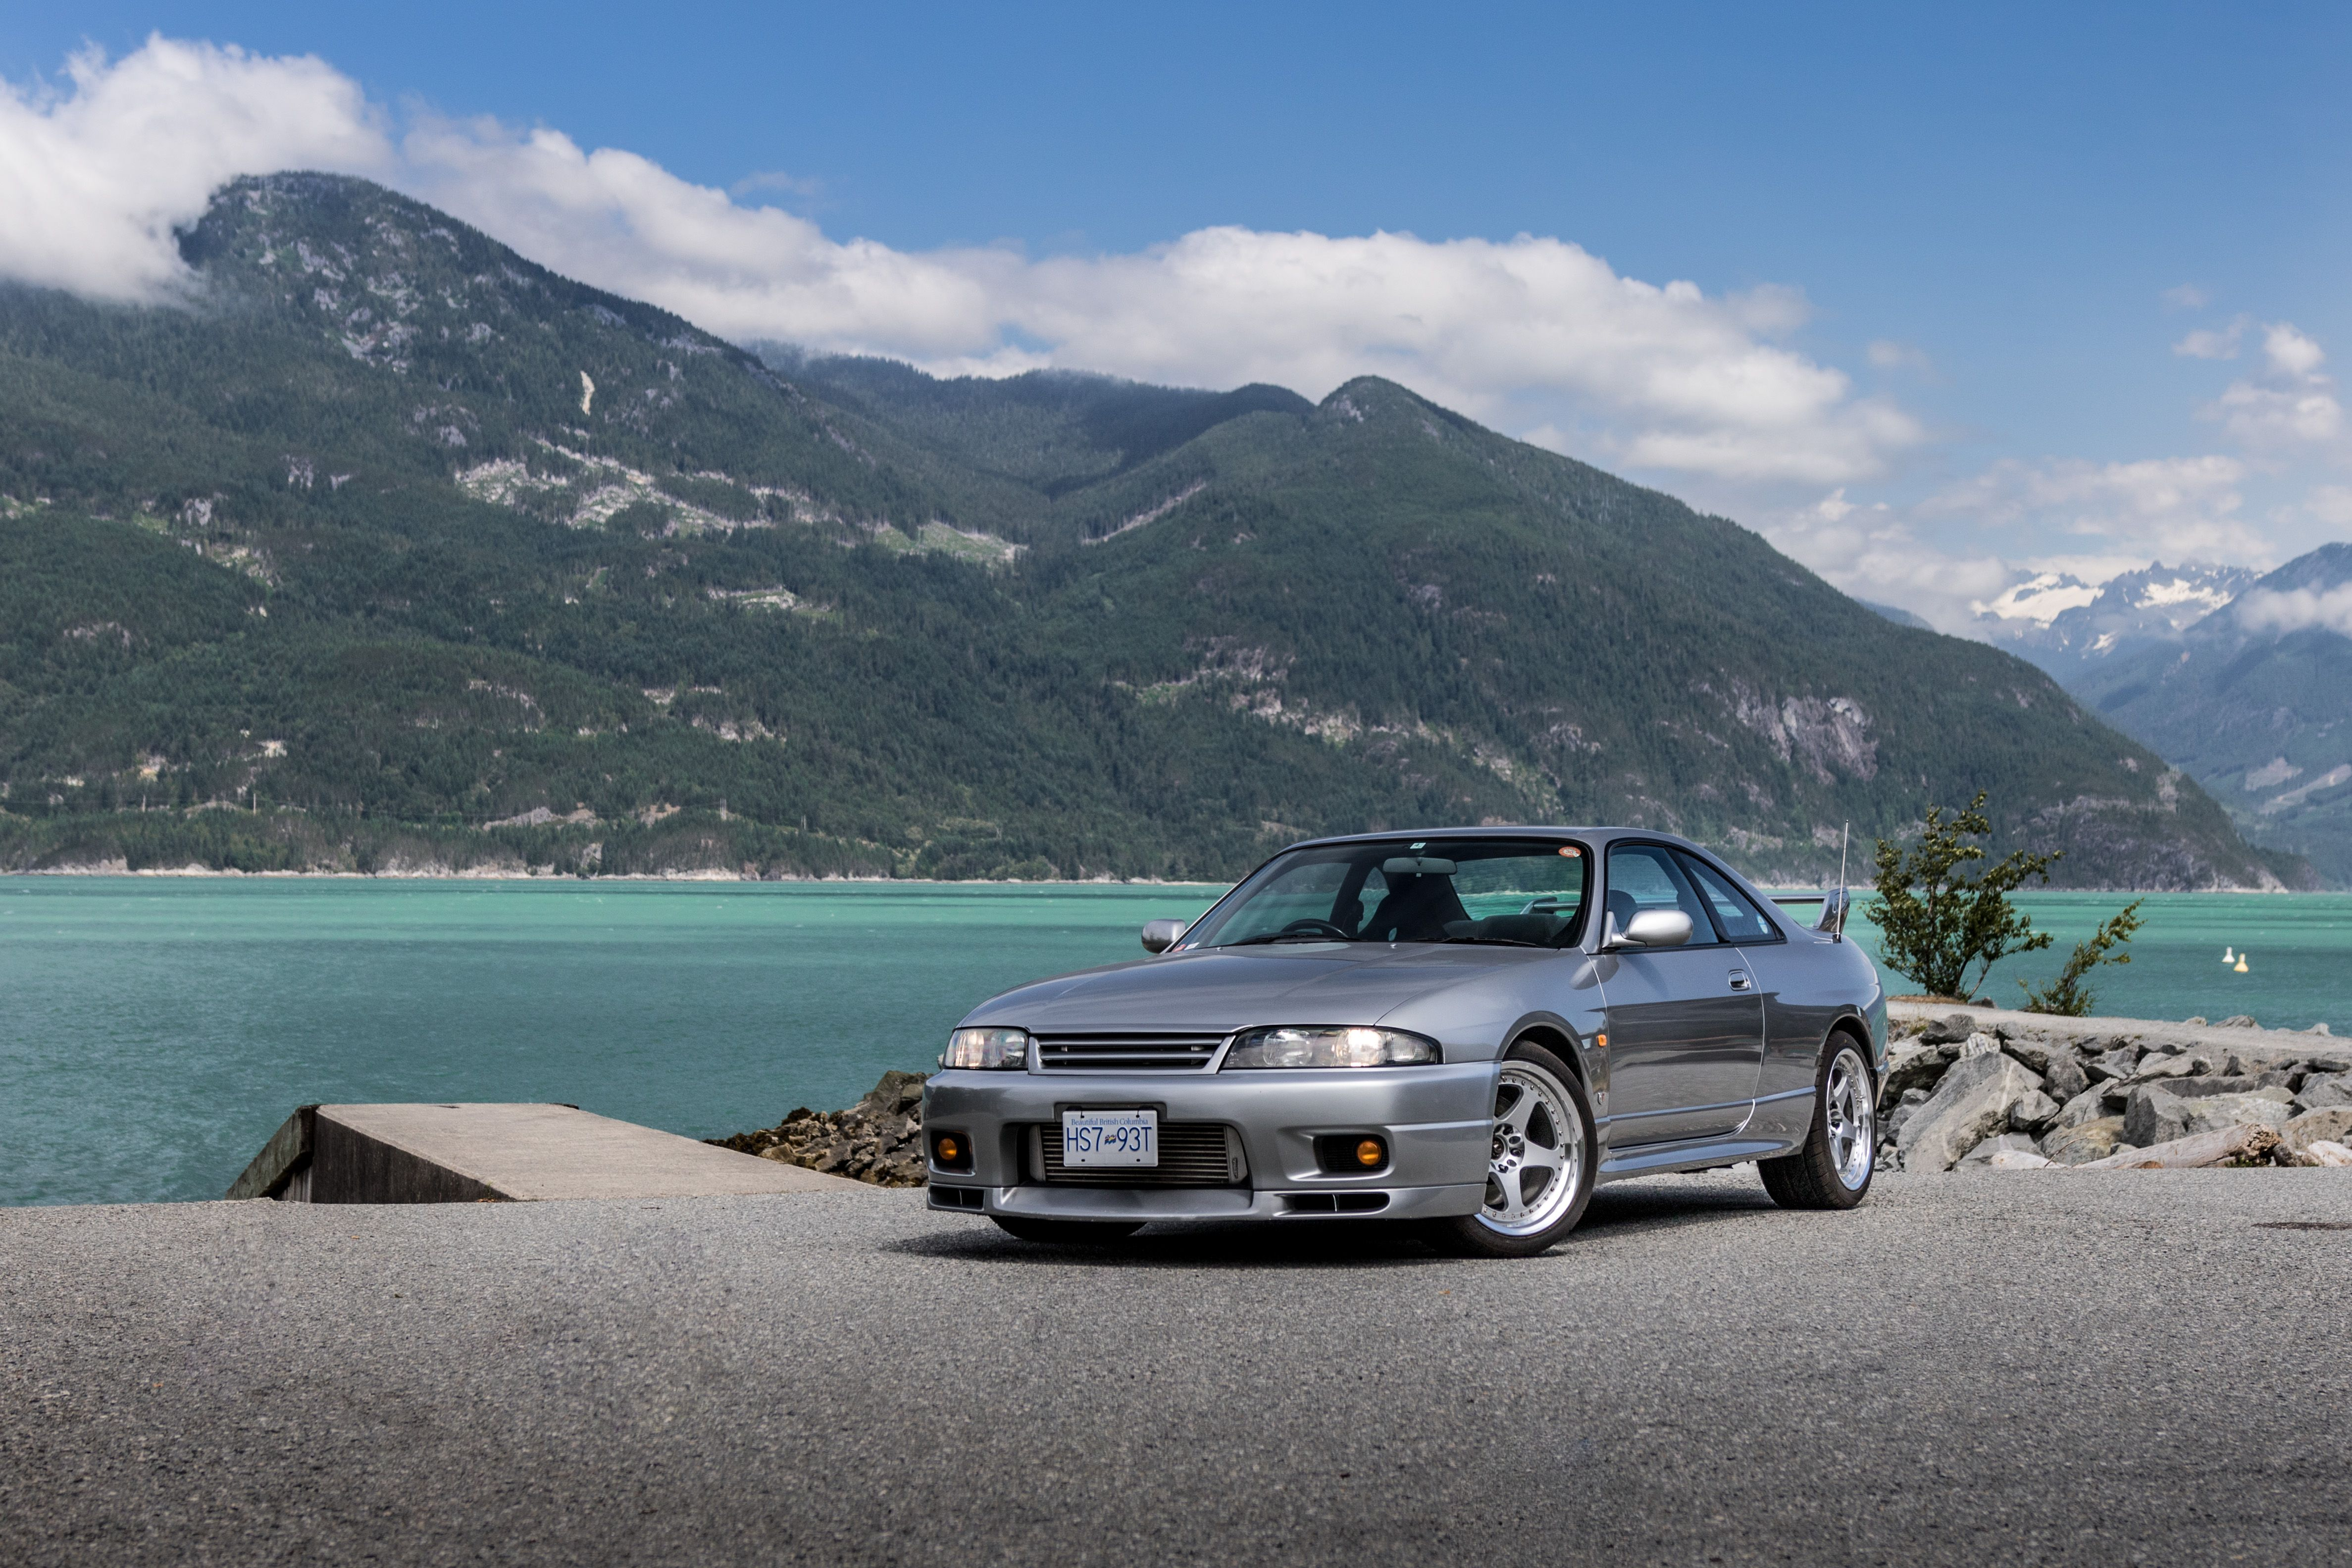 R33 Nissan Skyline Gt R Remembered Why The R33 Is The Best Gt R